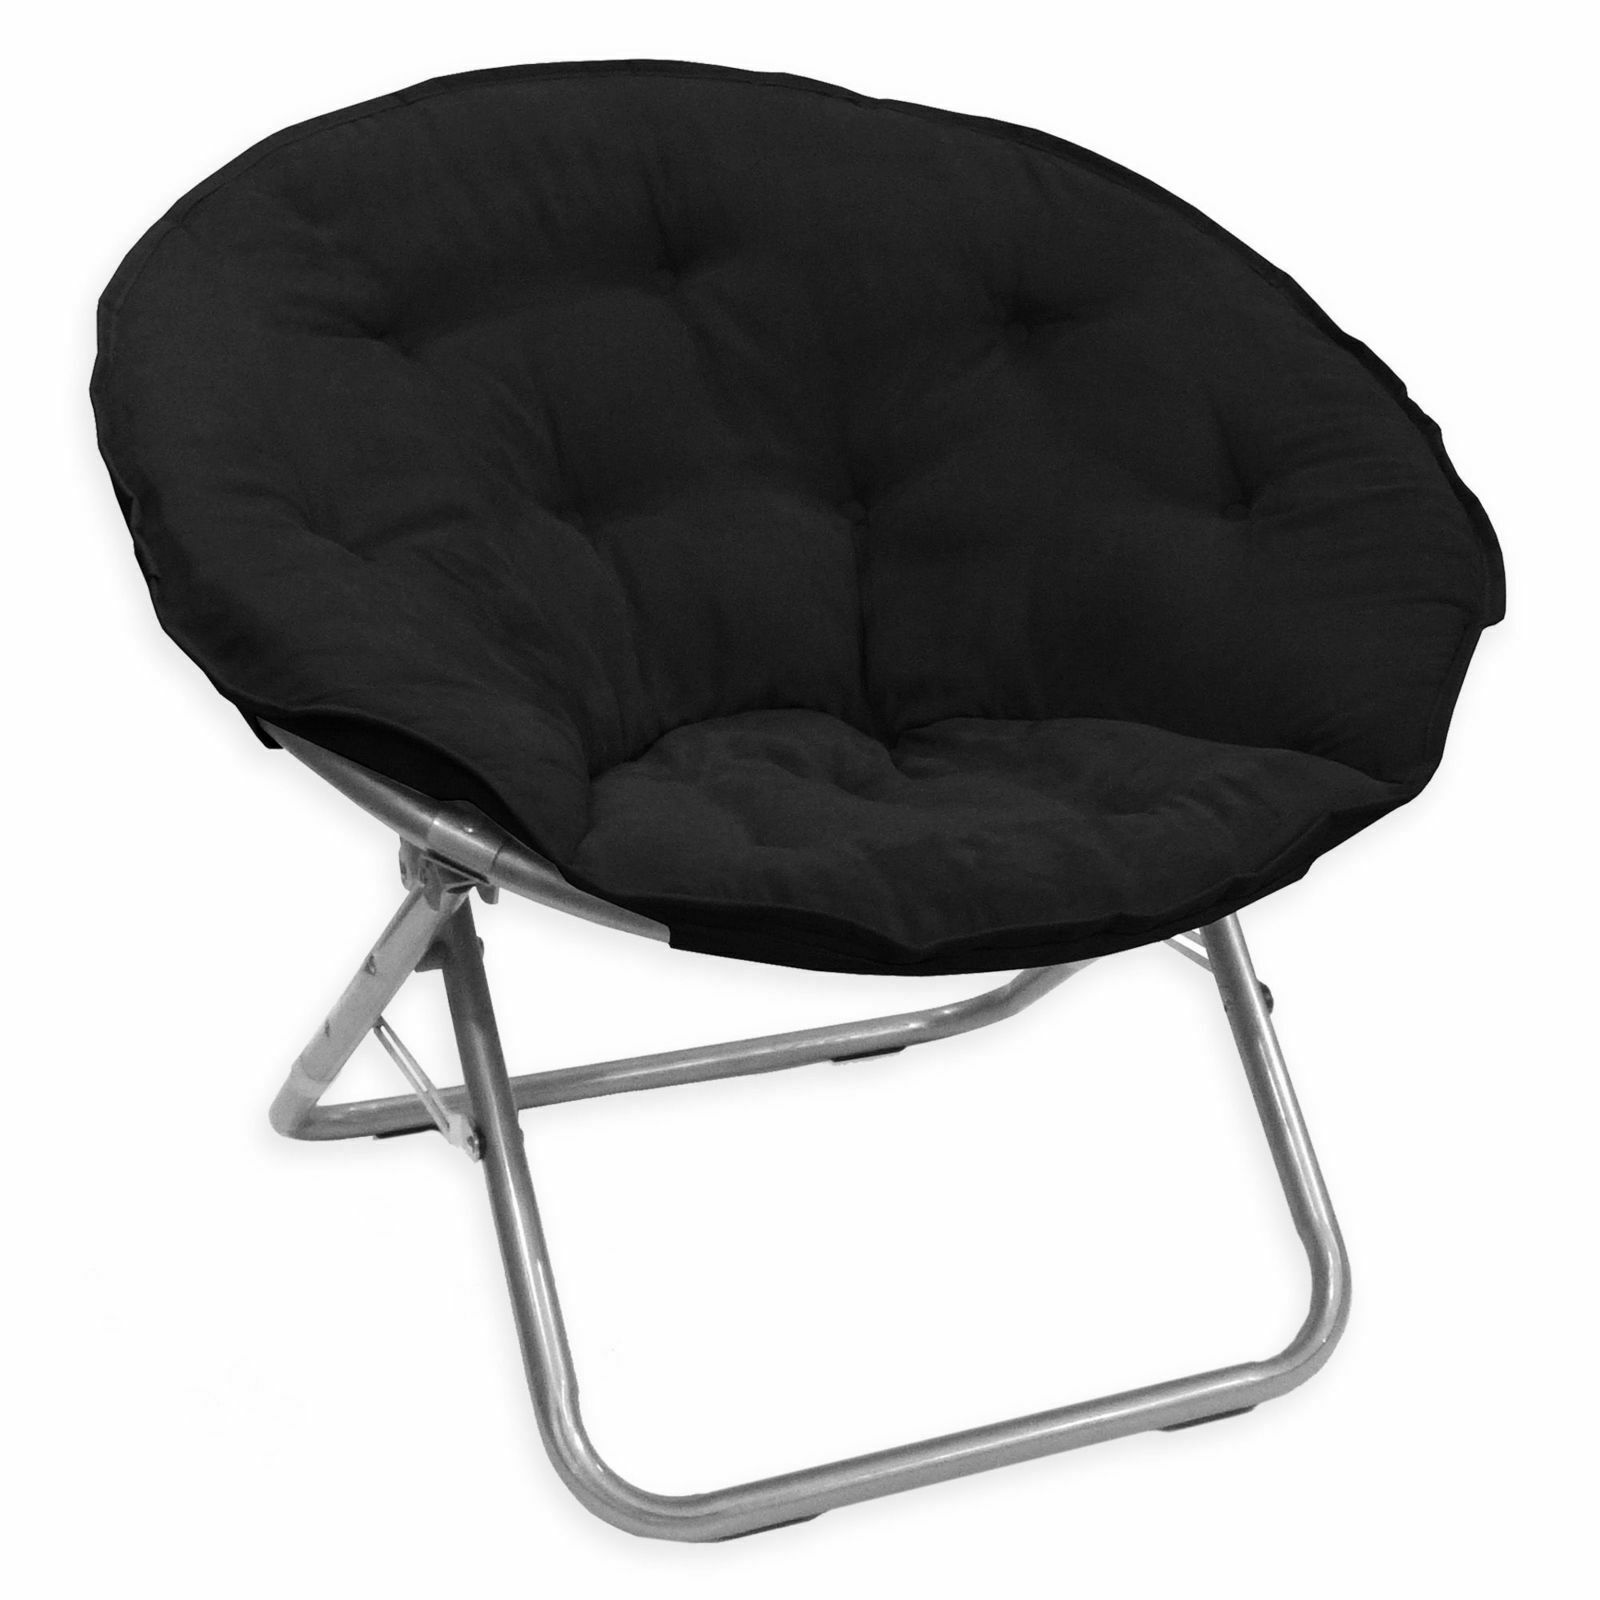 Details About Oversized Moon Chair Seat Stool Saucer Soft Folding Living Room Sofa Papasan